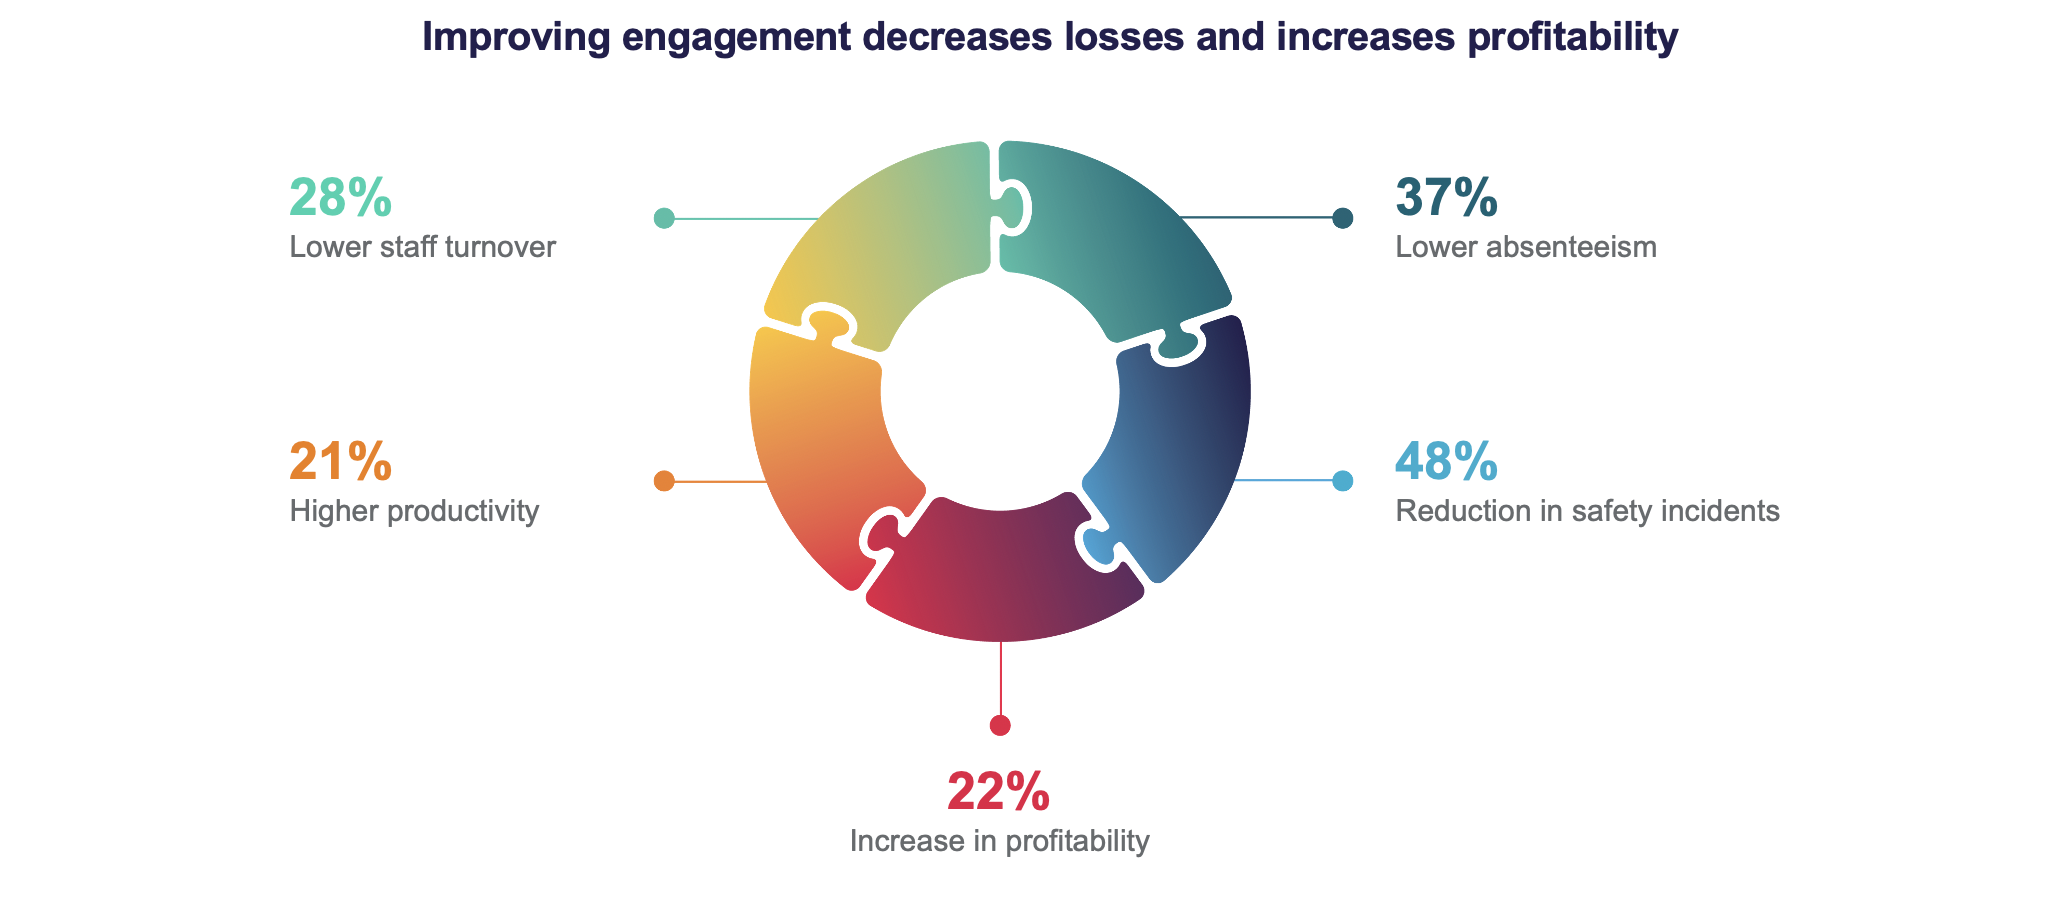 The impact of successful employee engagement